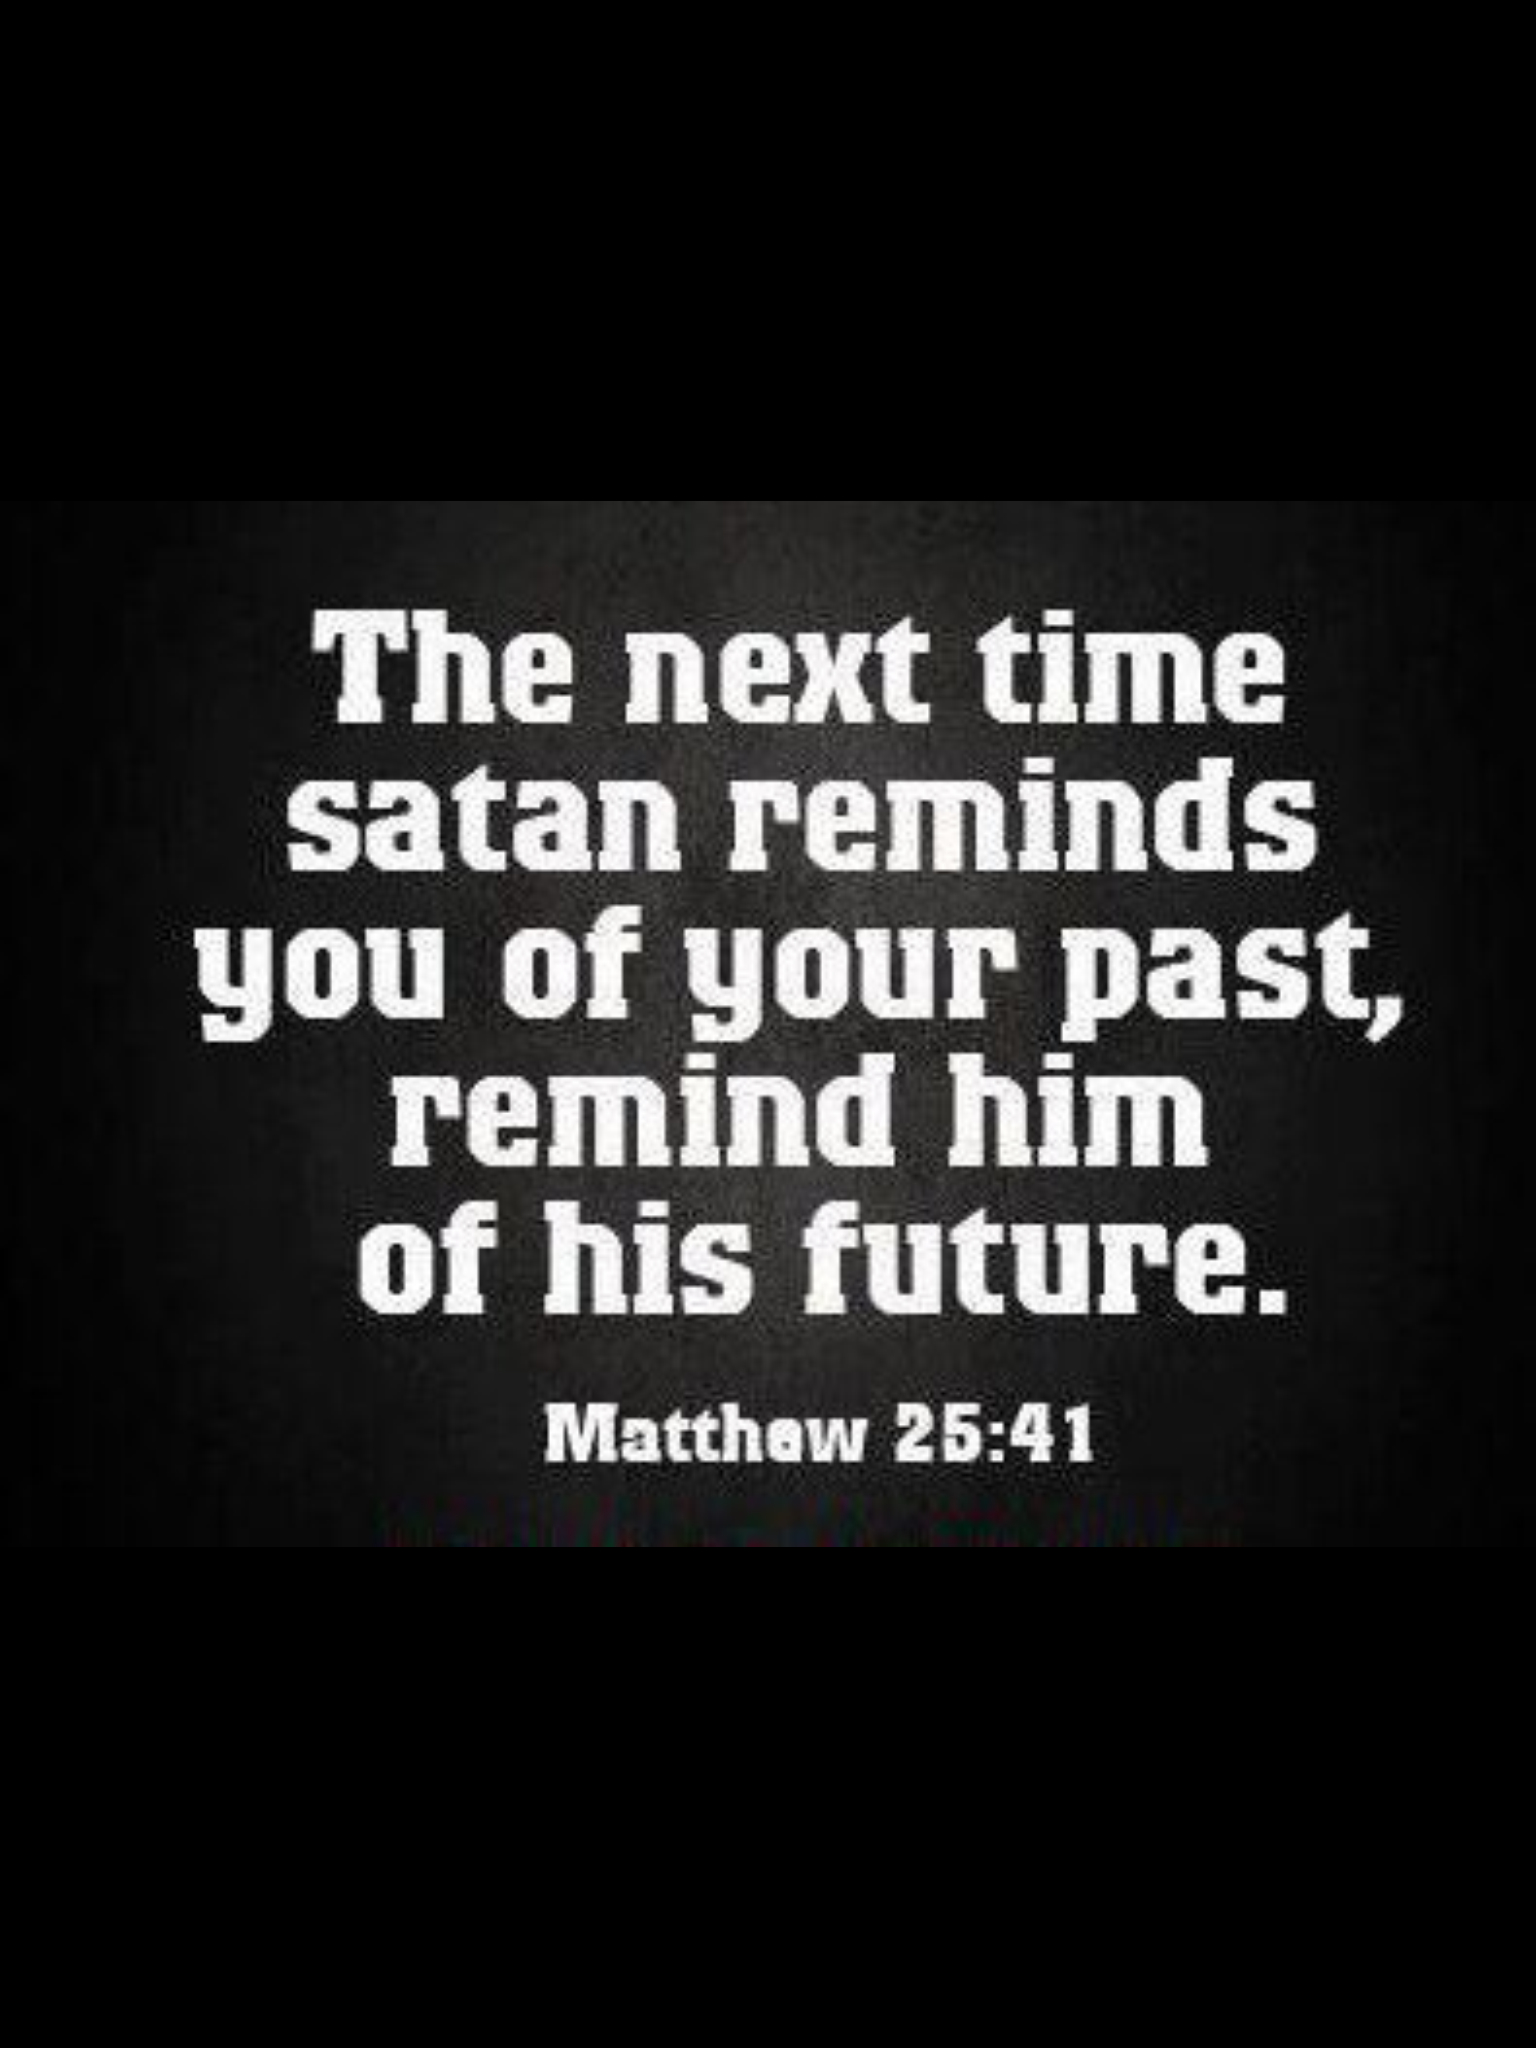 Quotes And Sayings: Satanic Quotes And Sayings. QuotesGram